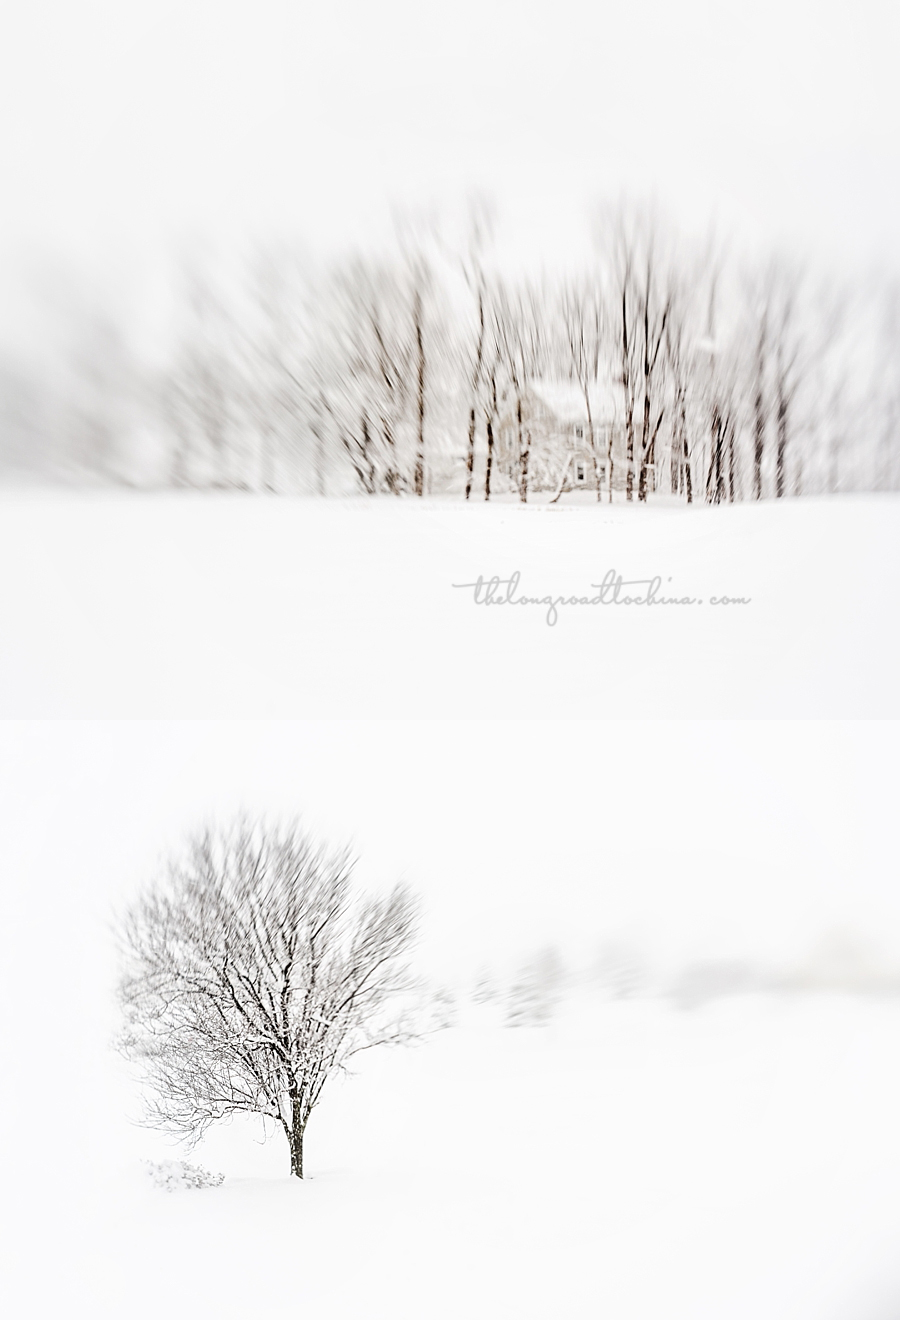 Lensbaby Winter Scenes